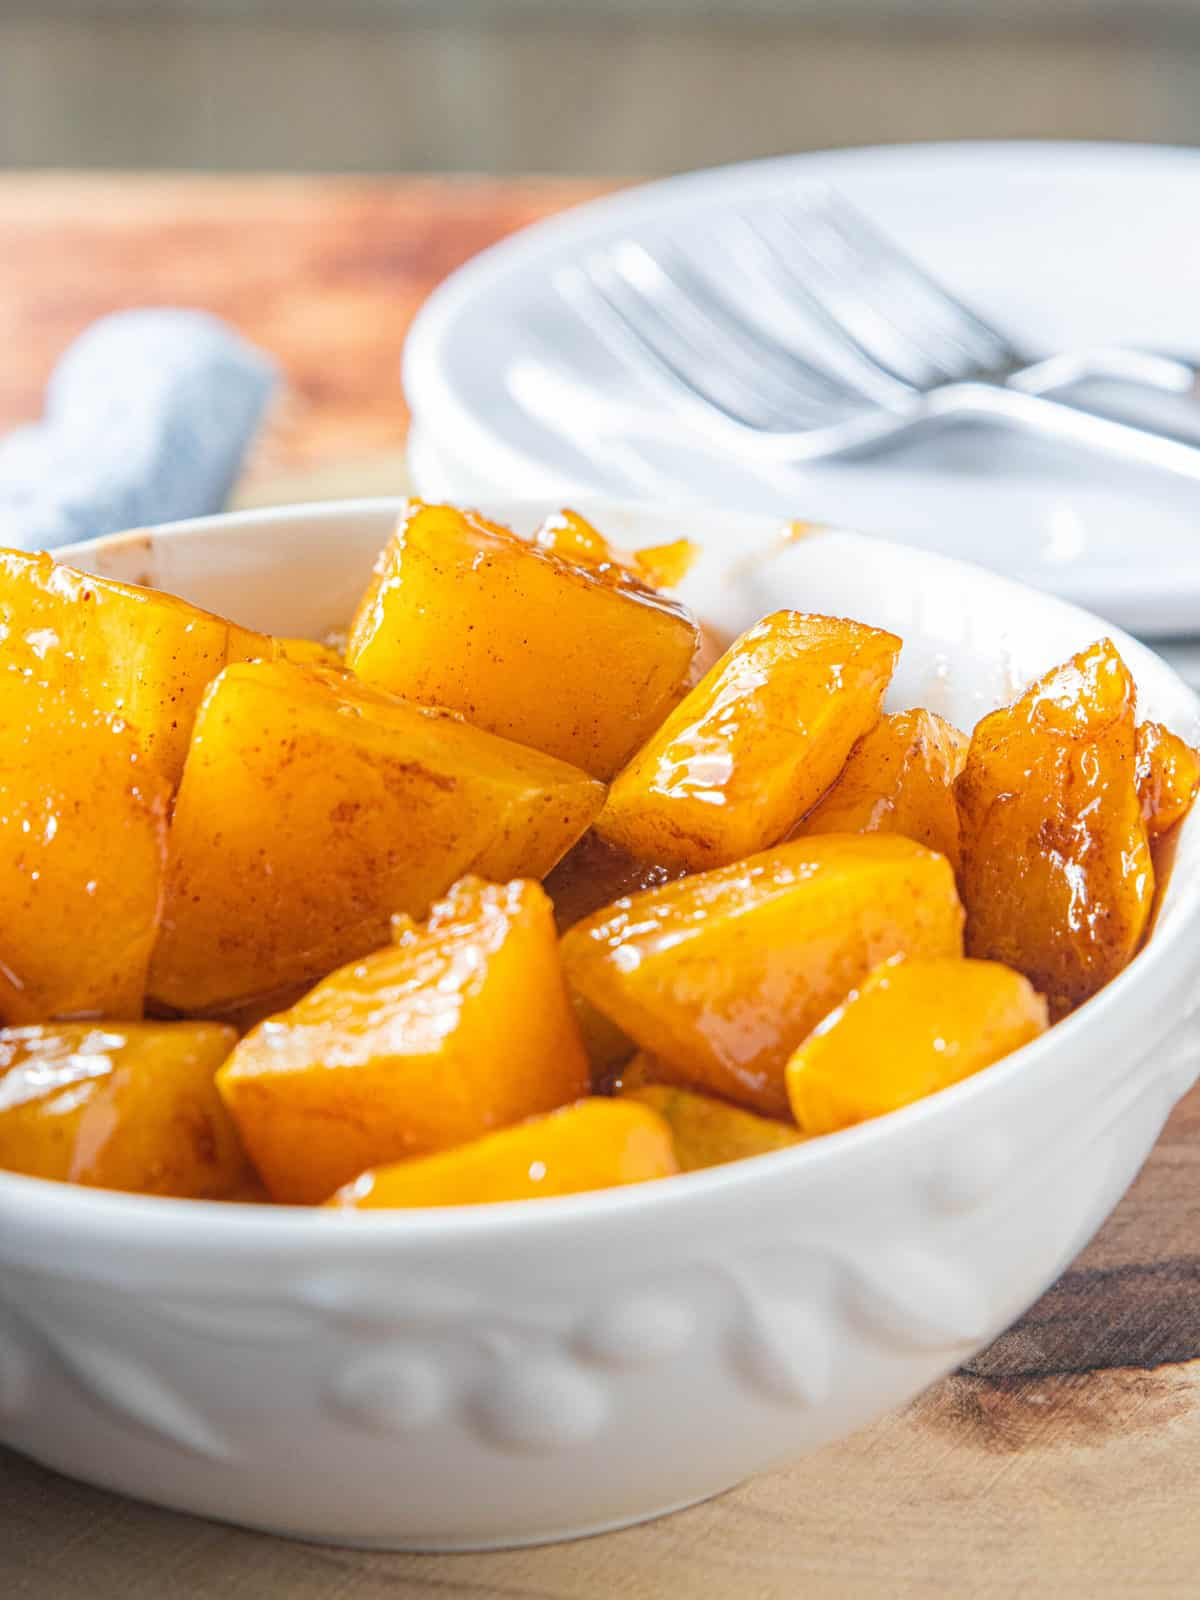 Roasted diced butternut squash in a white bowl glistening with the caramelized sugar.